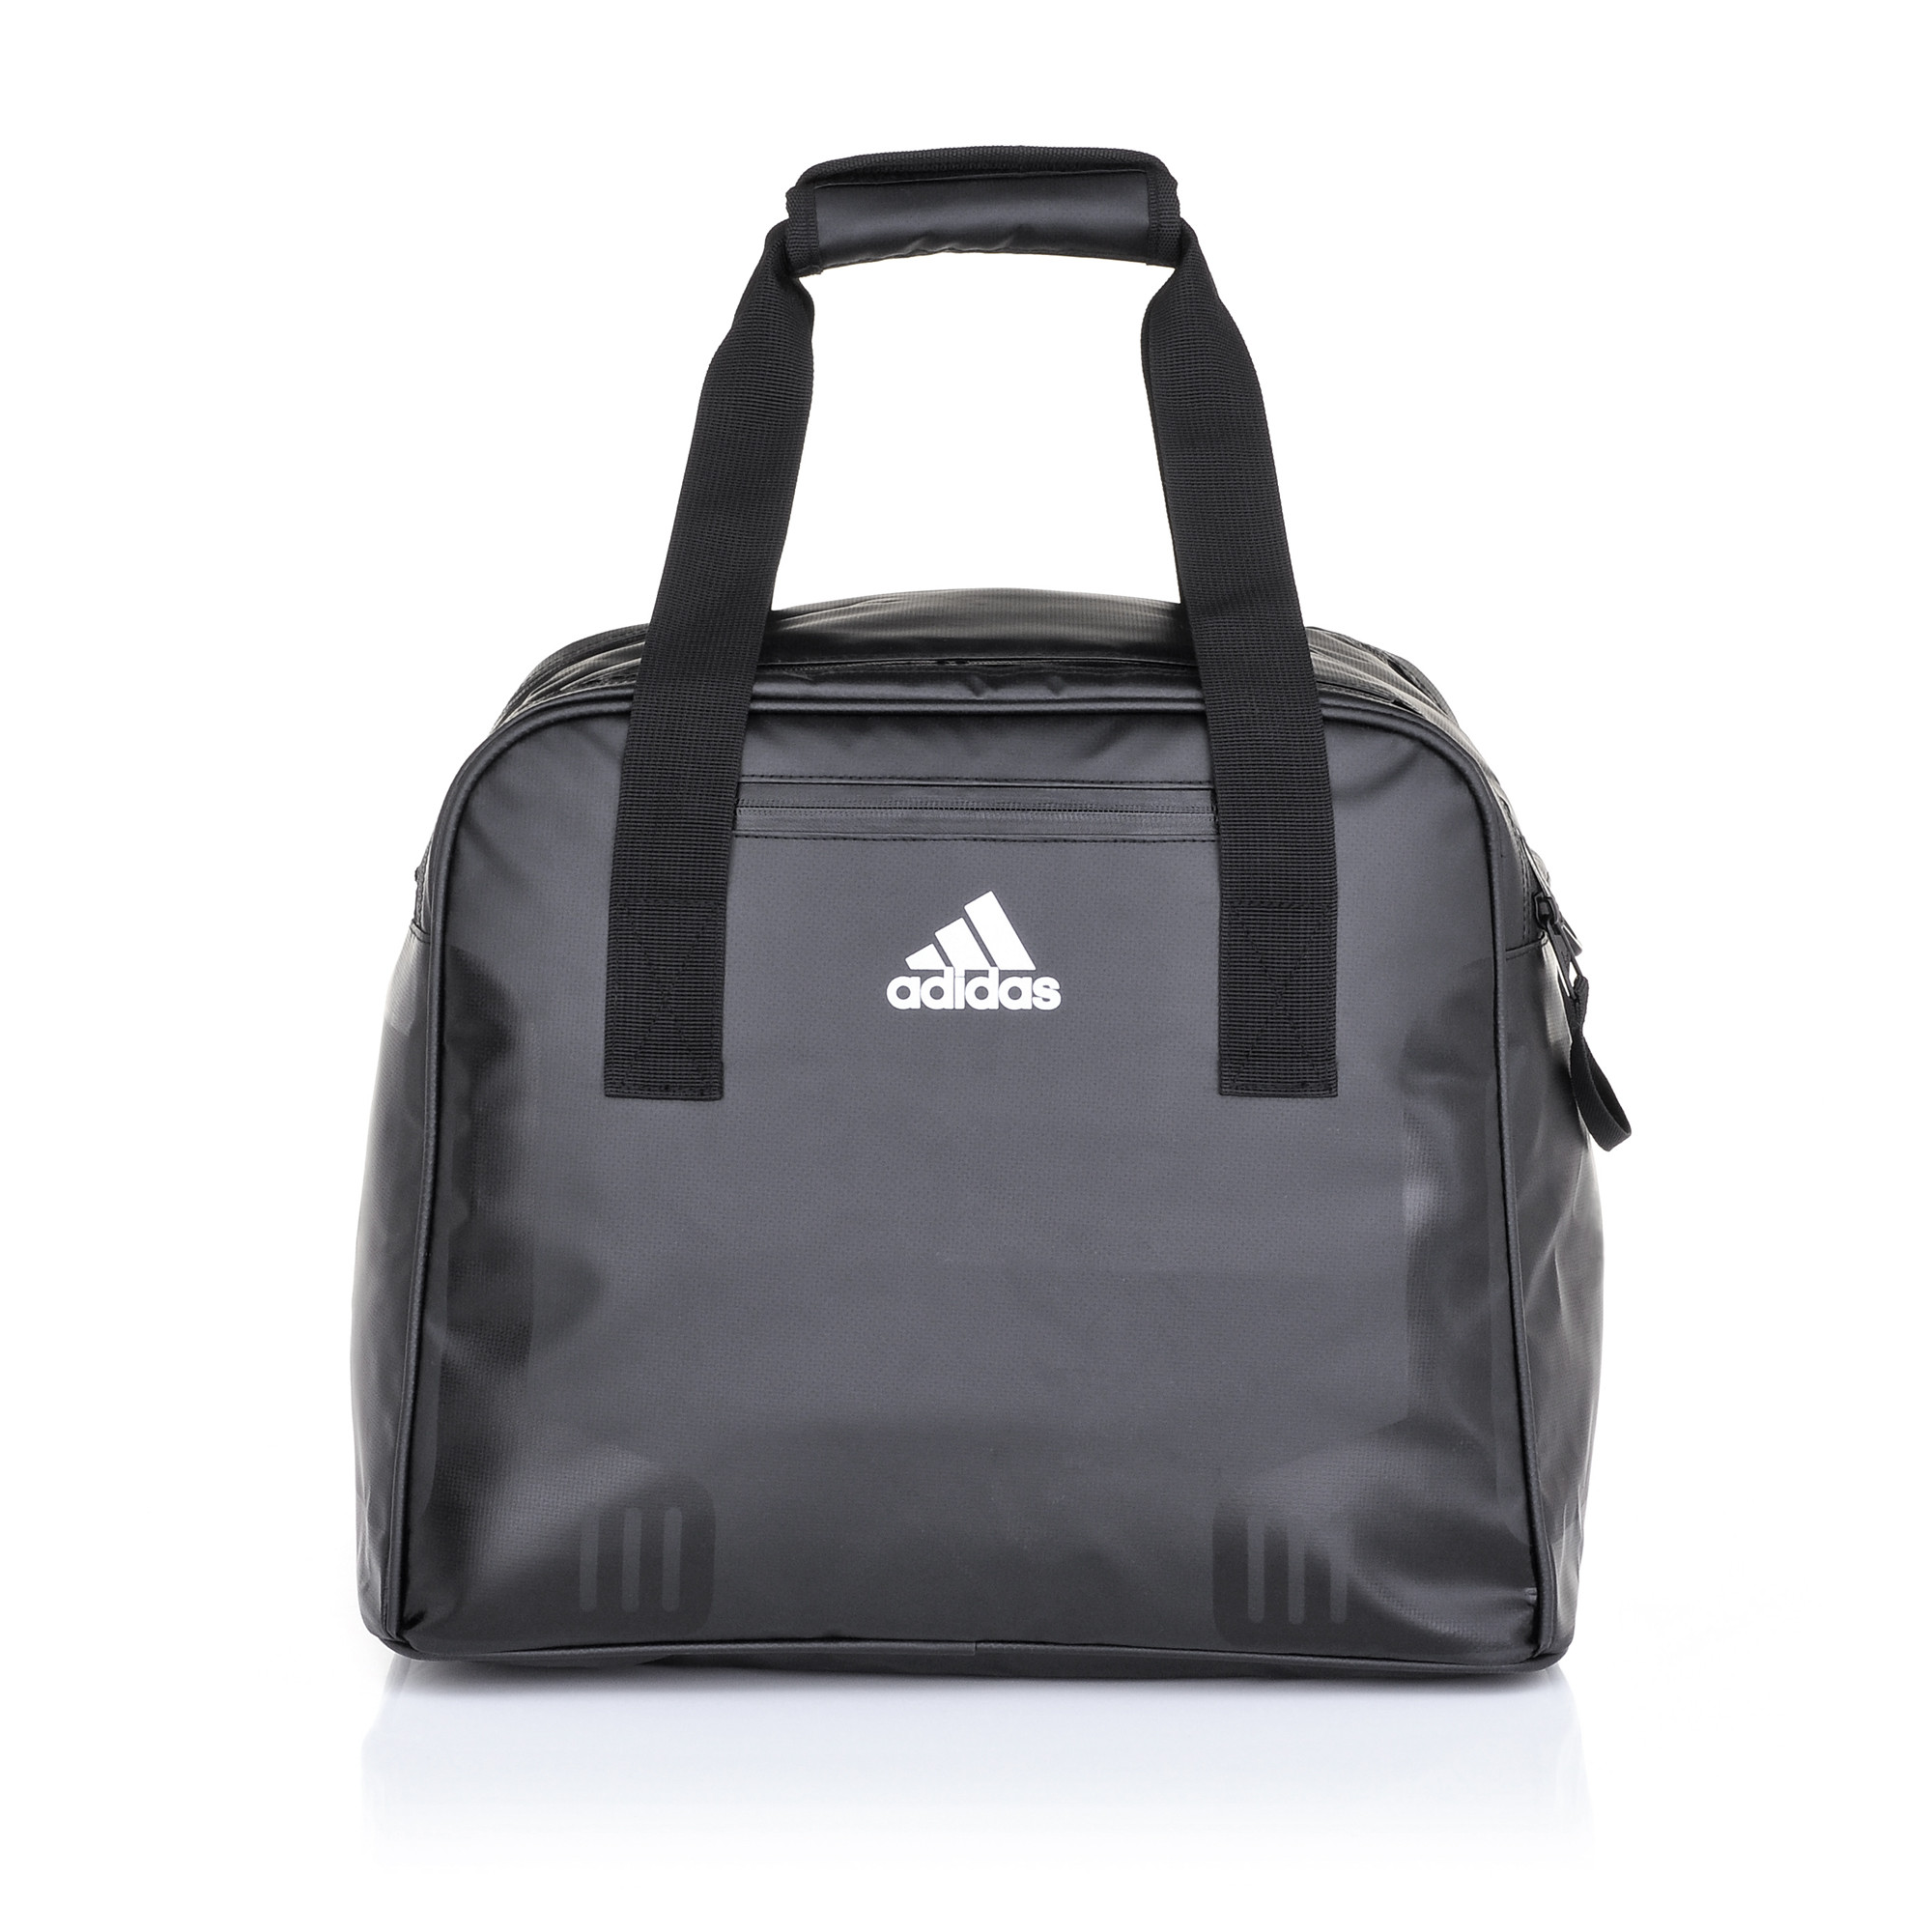 9c4414ff71be Driving Driving Driving Xlt Race Blackblack Shoe Adidas Adidas Adidas  Adidas Trackstar gUnnf70